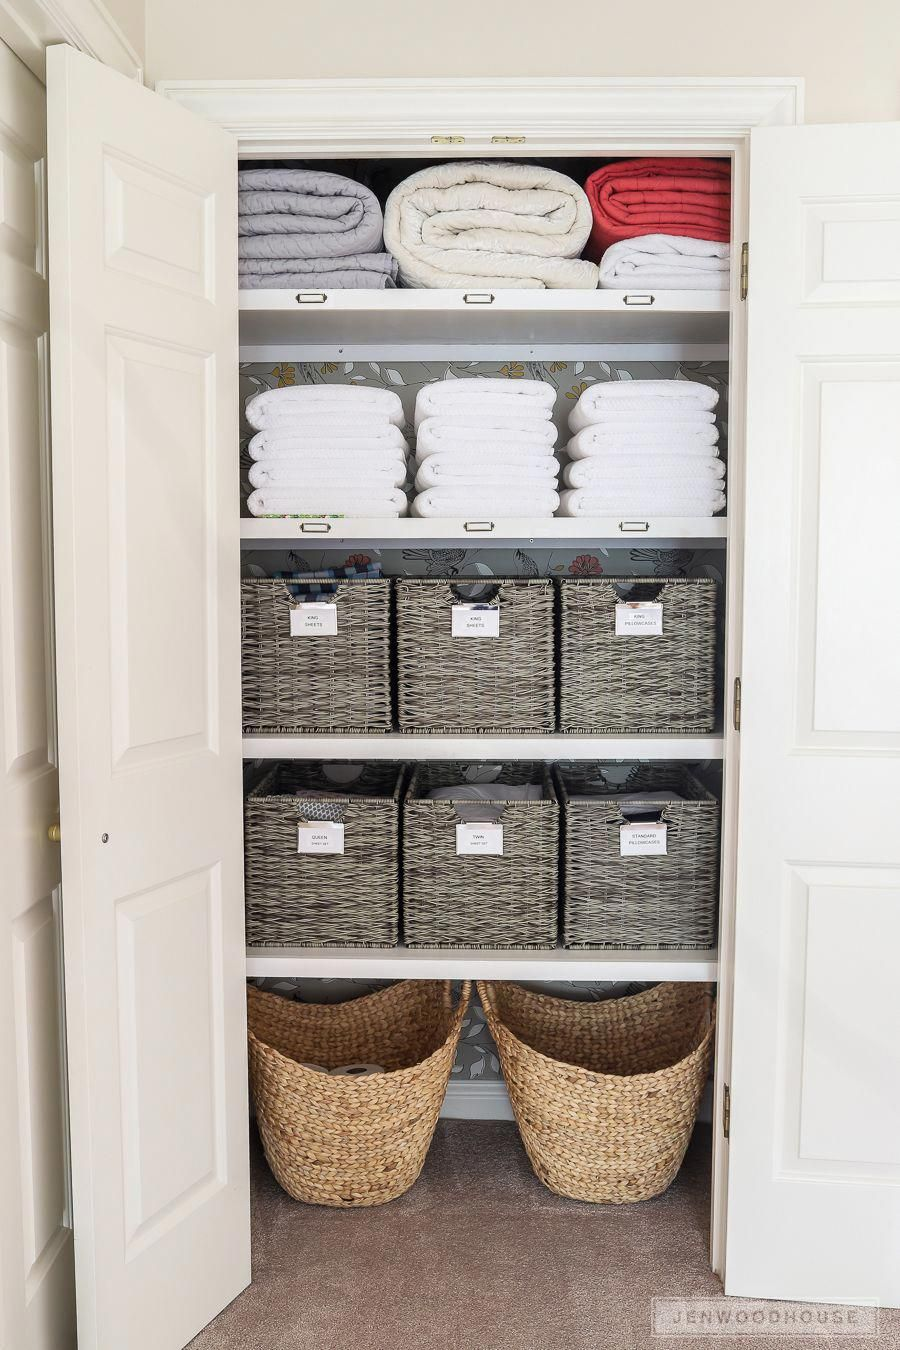 Linen Closet Organization - How to organize your linen closet #diyhomedecor